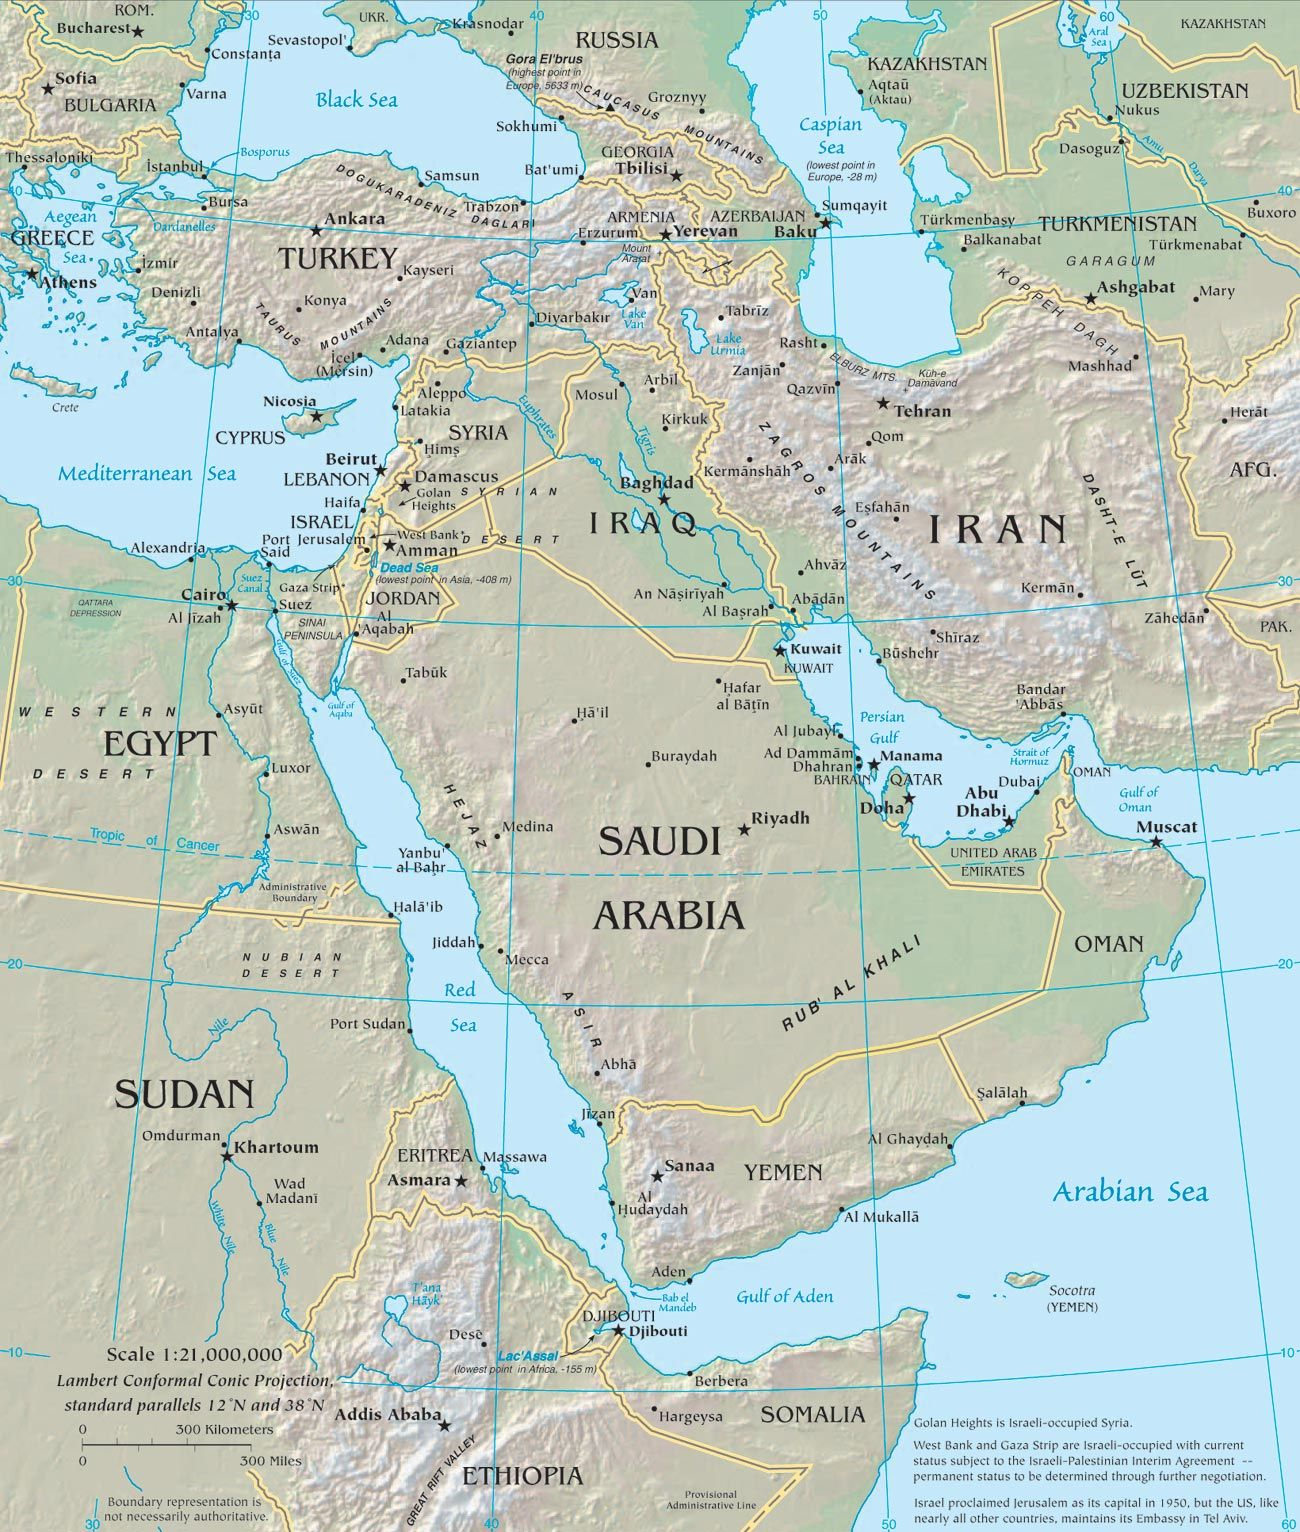 Islam And Middle East From Historical Perspective